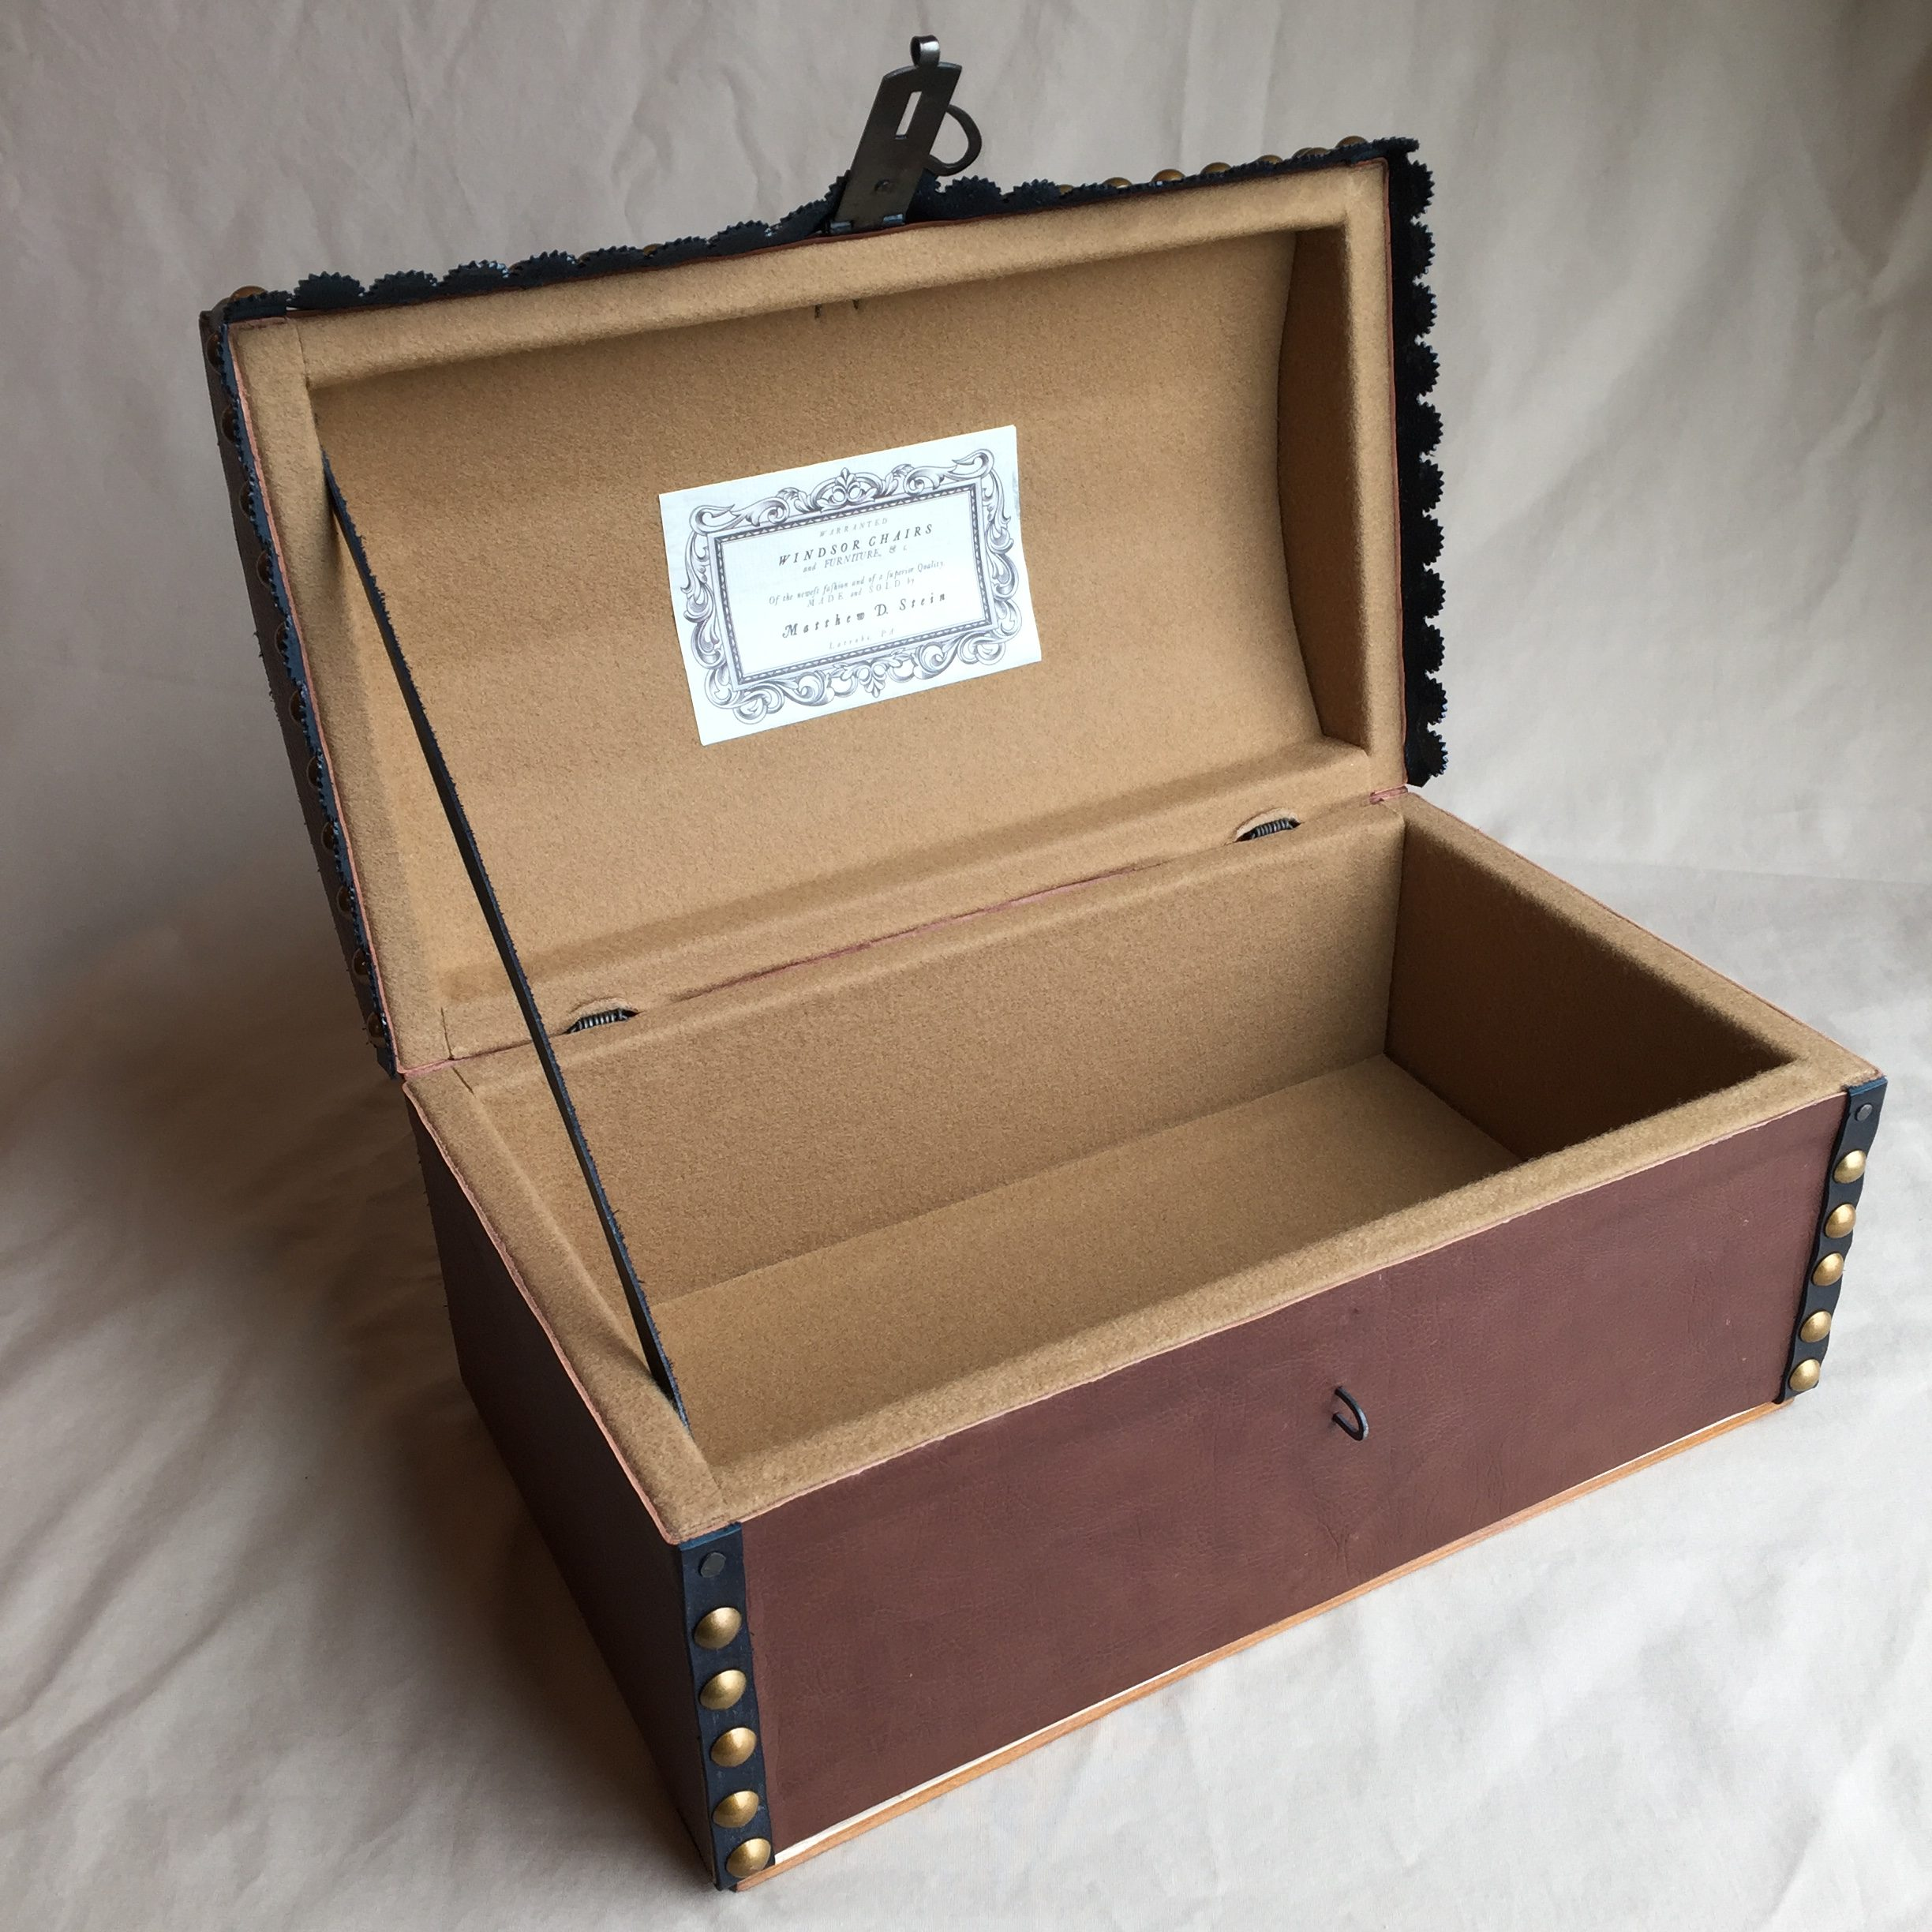 Interior of Document Box